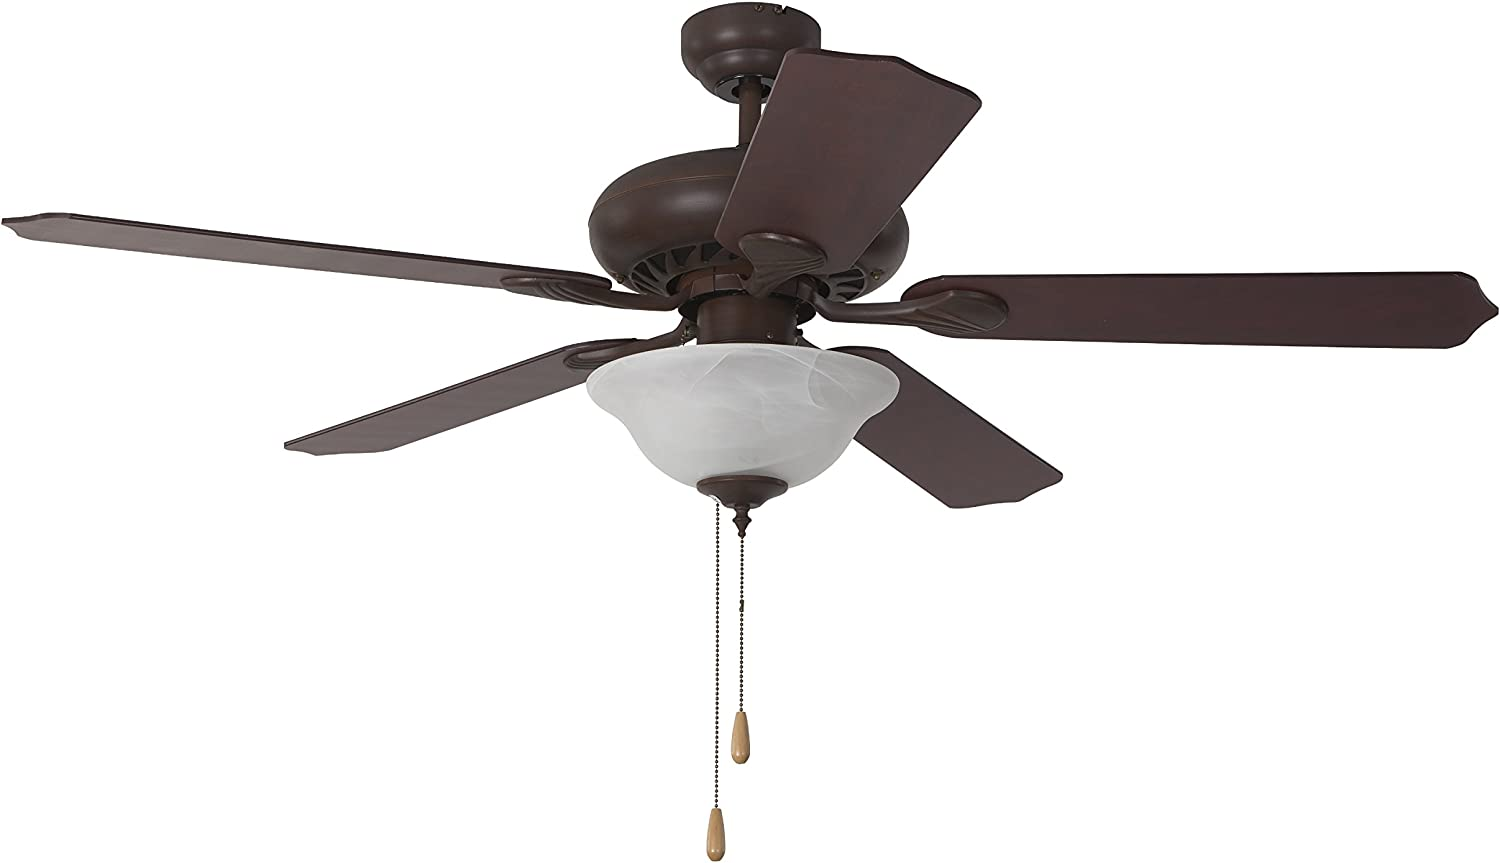 Yosemite Home Decor WHITNEY-DB-1 52-Inch Ceiling Fan in Dark Brown Finish with 3 Light and 72-Inch Lead Wire Included, Dark Brown